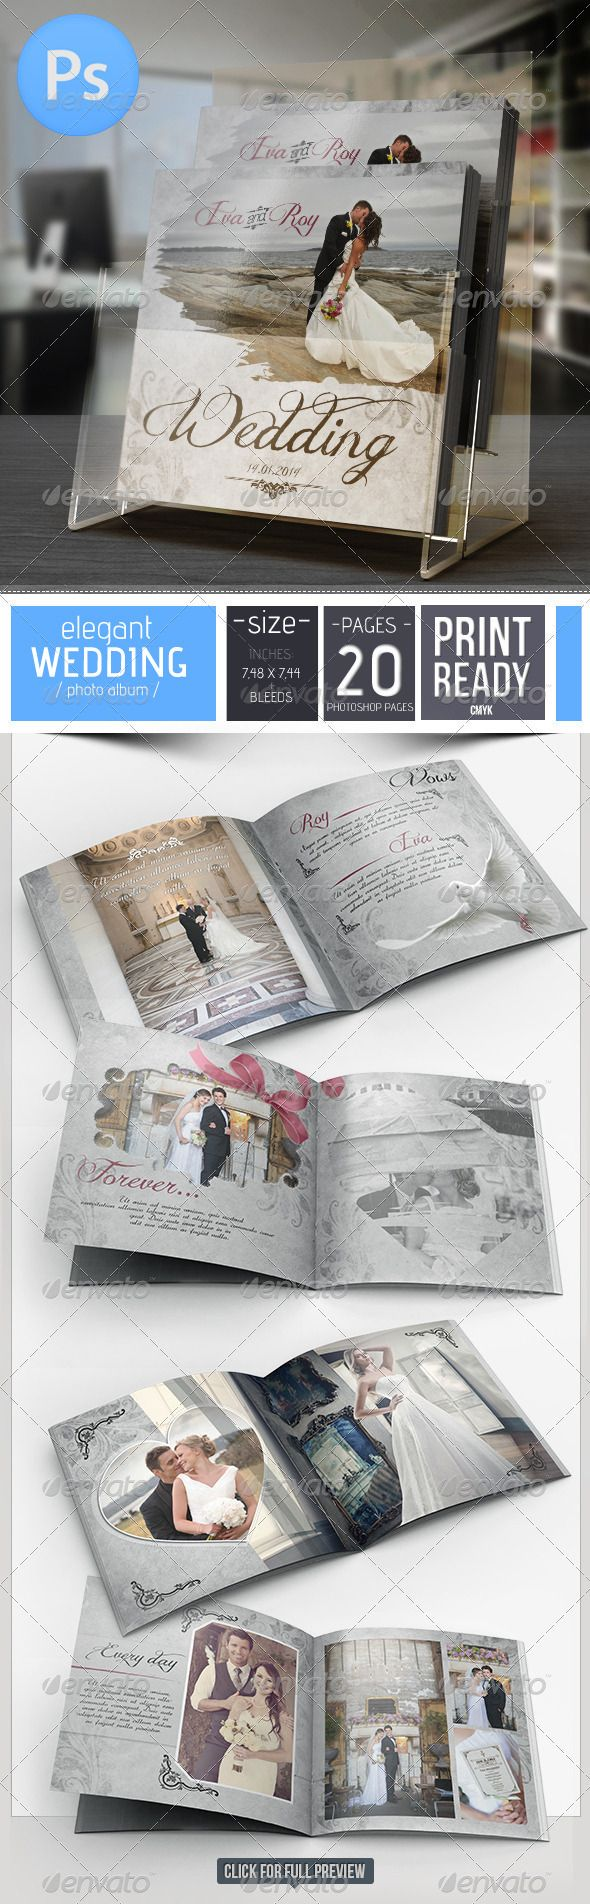 20 Pages Elegant Wedding Photo Album For Photoshop | Photo album ...